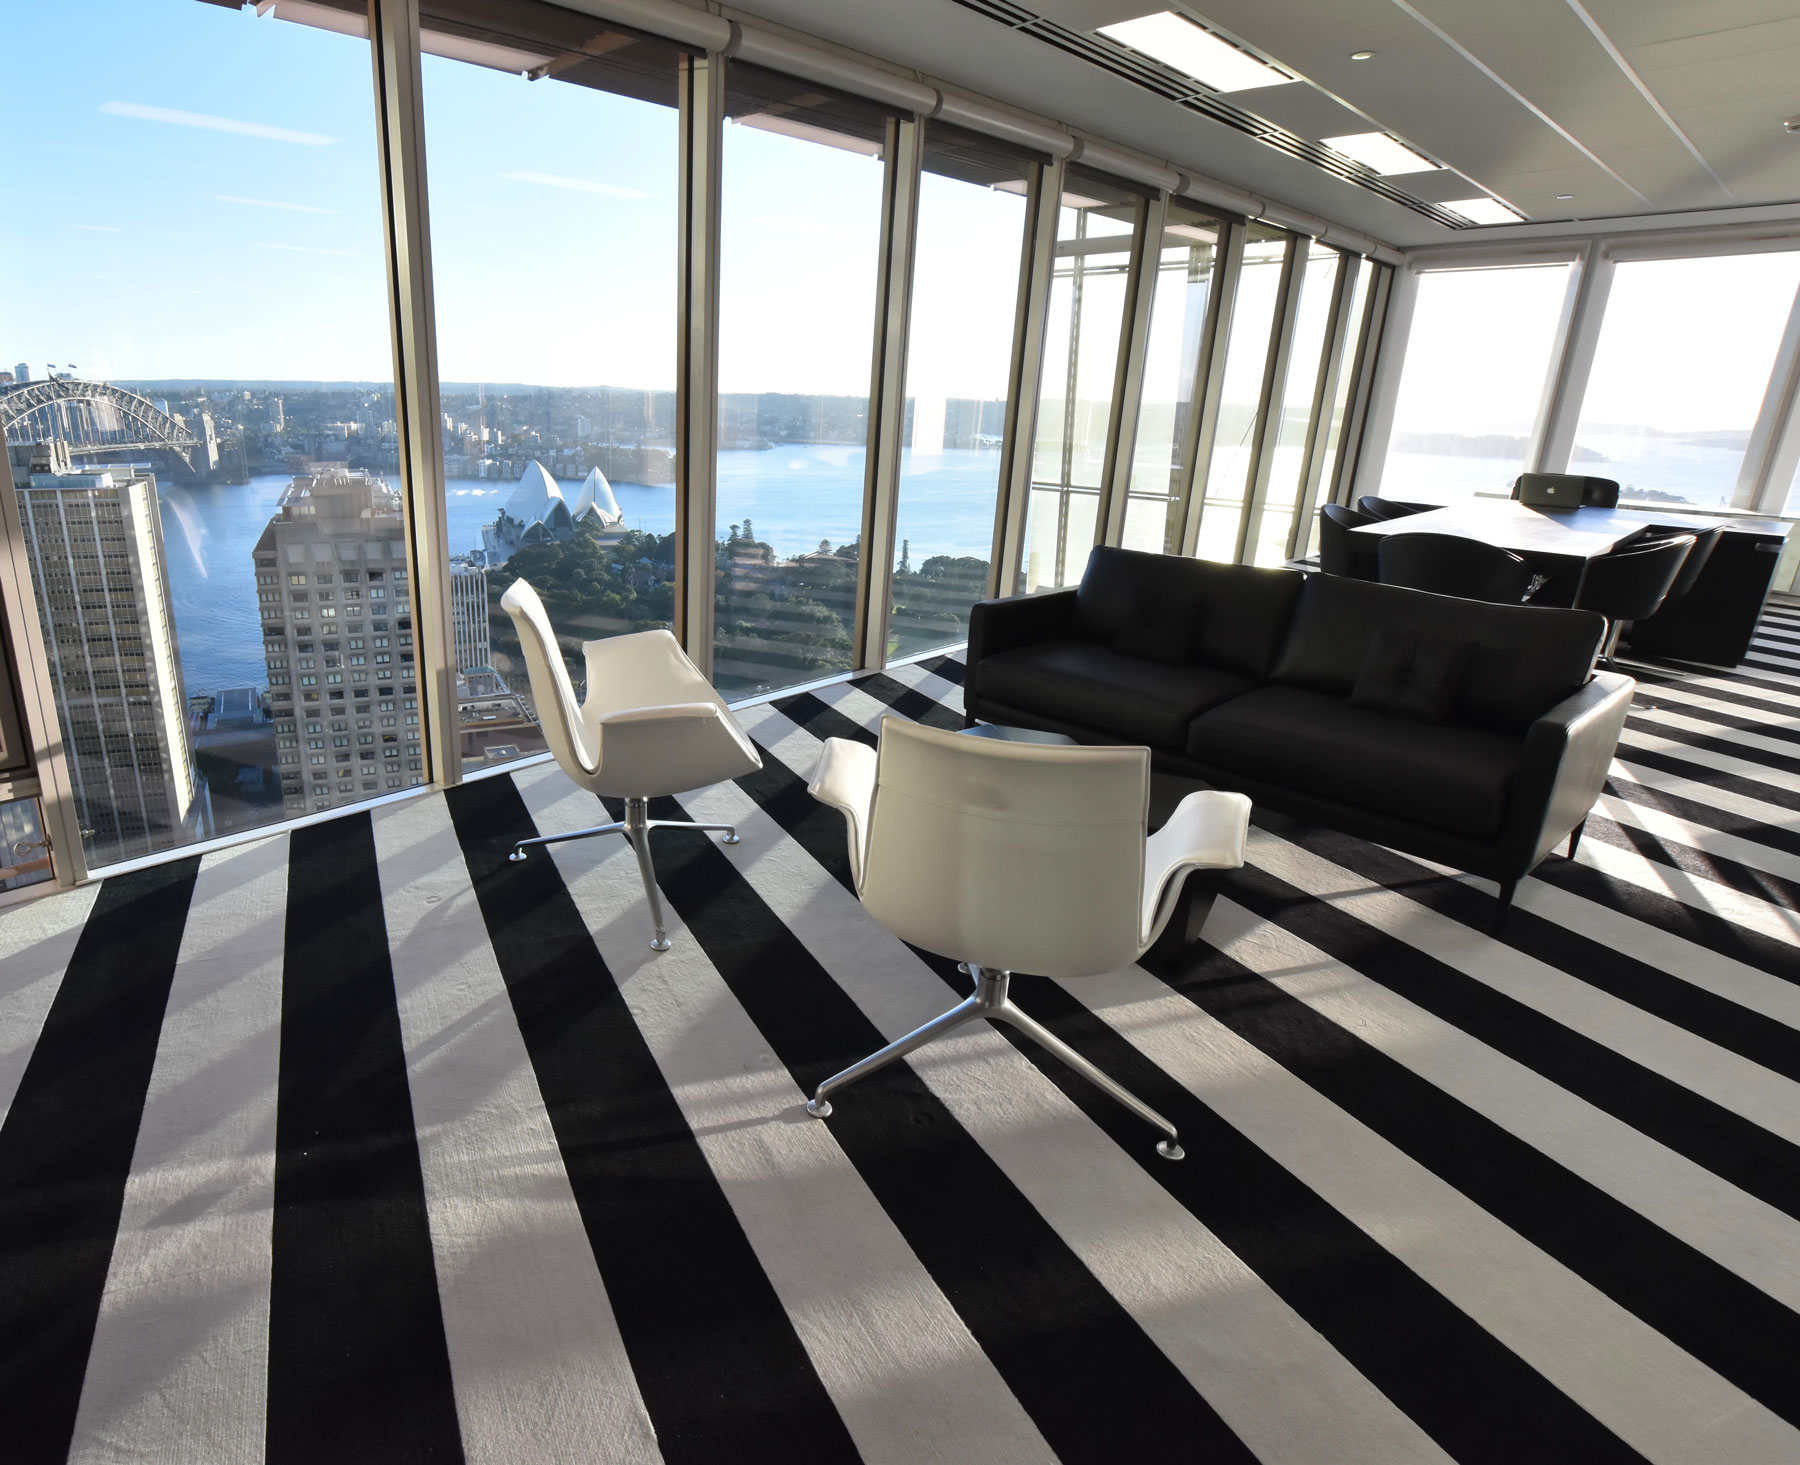 sydney commercial interior design office fit out godfrey hirst CEO office